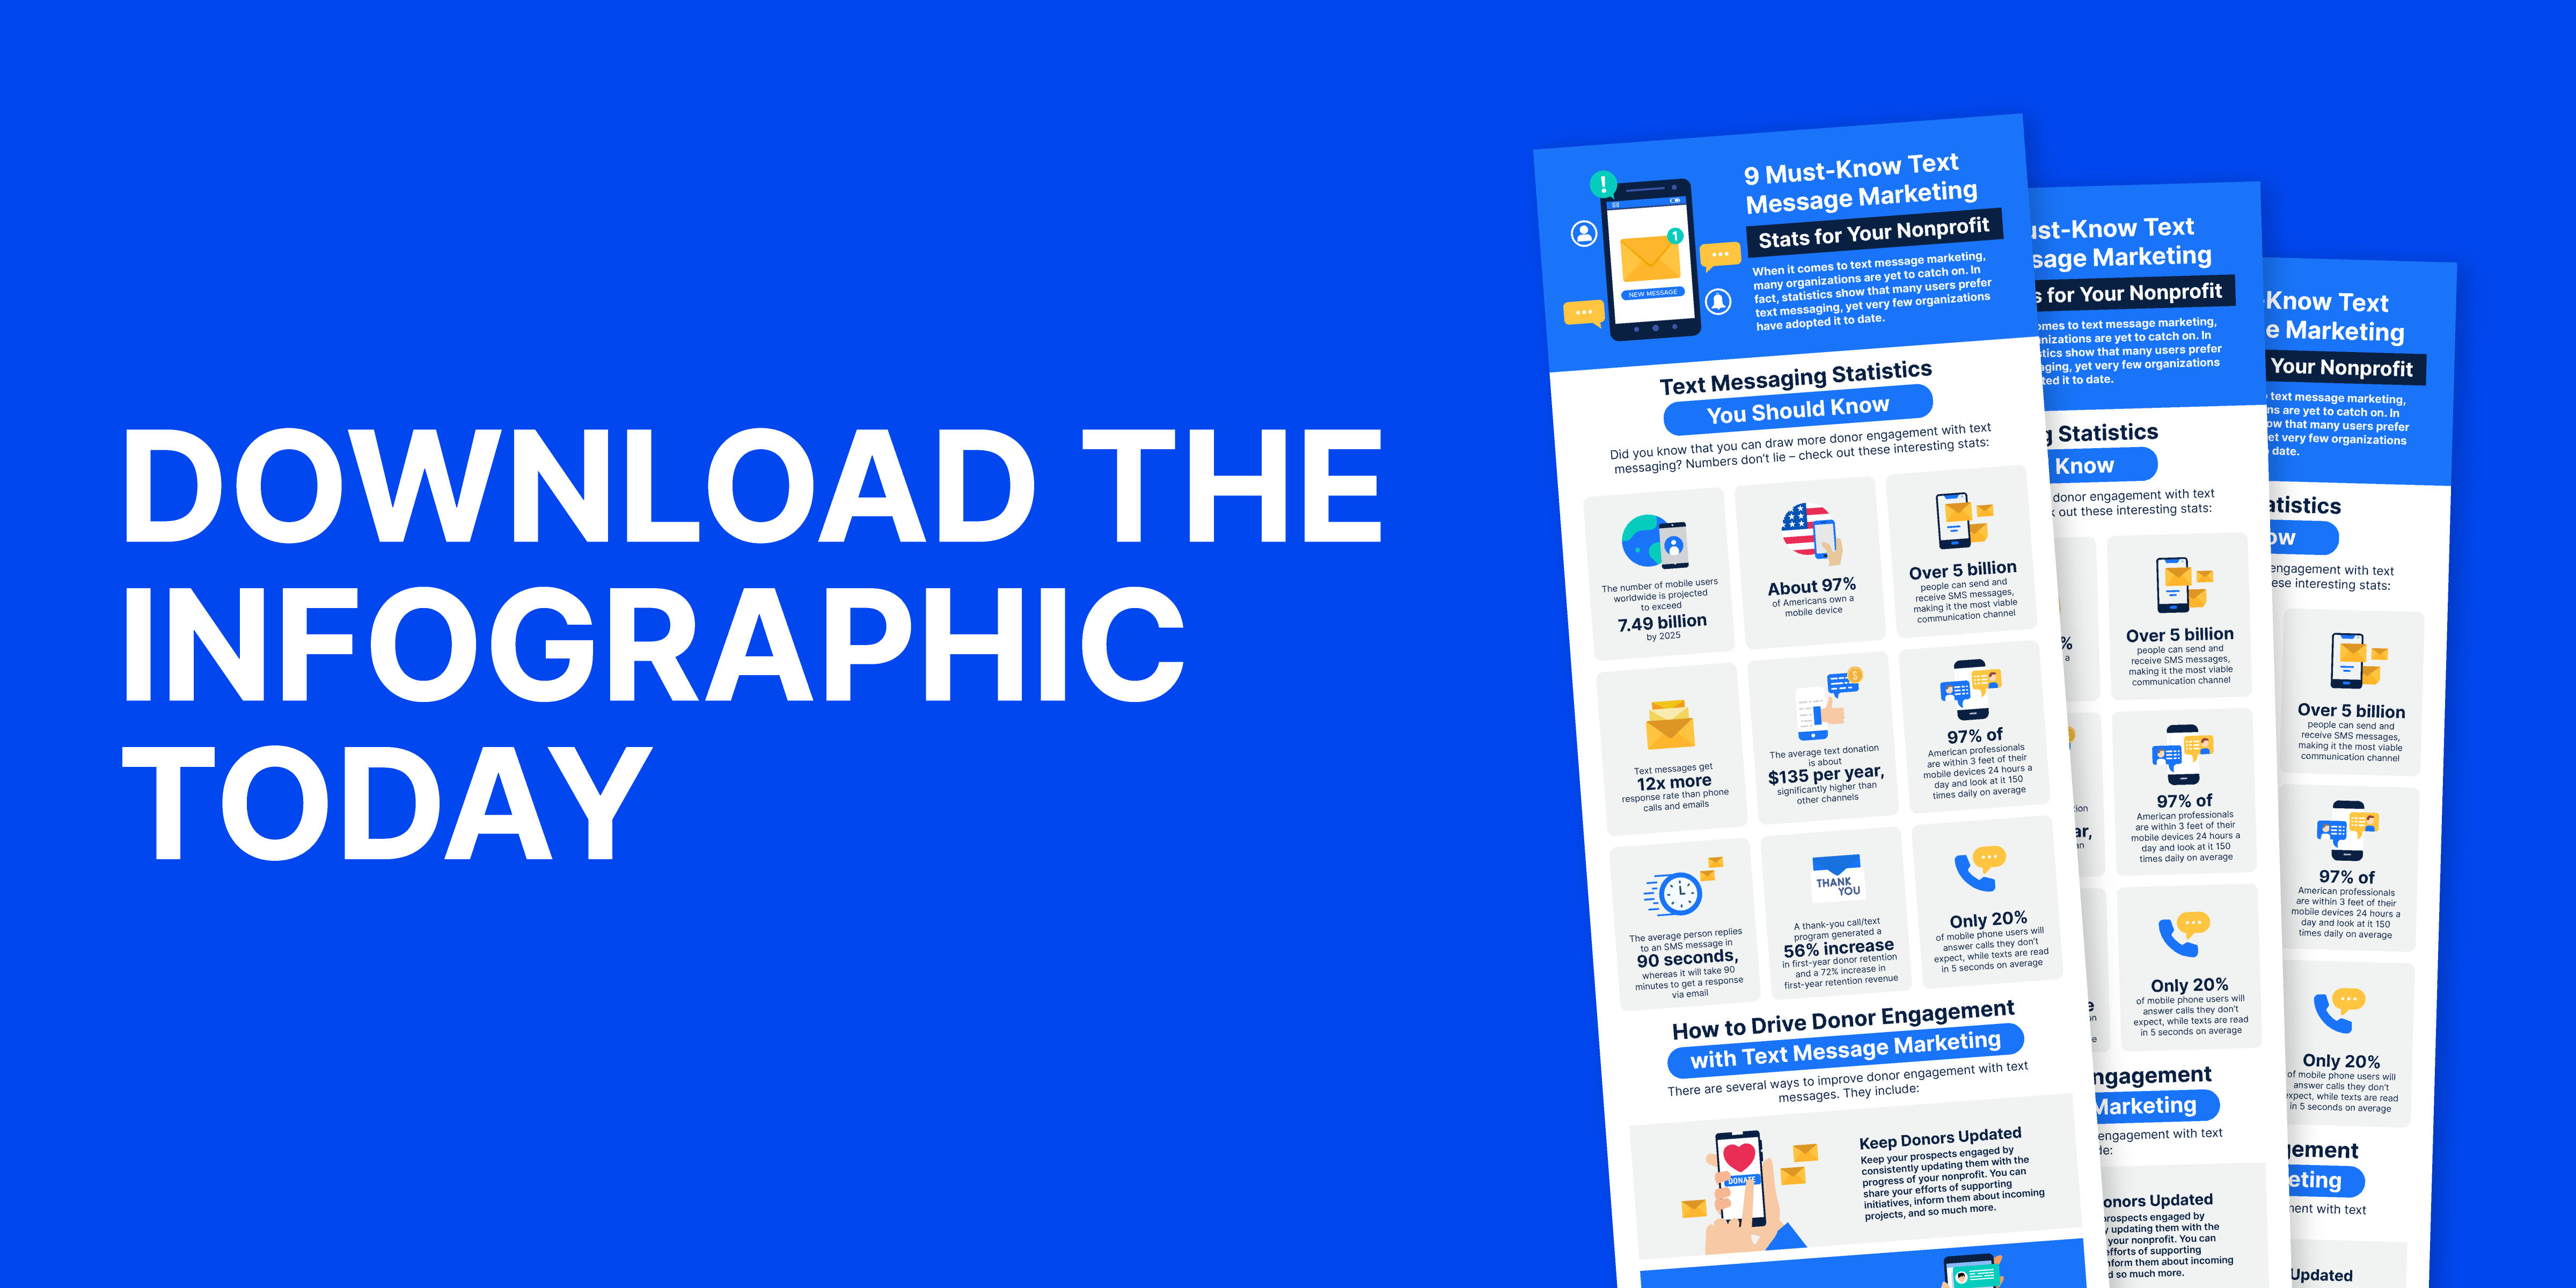 Download the Infographic Today